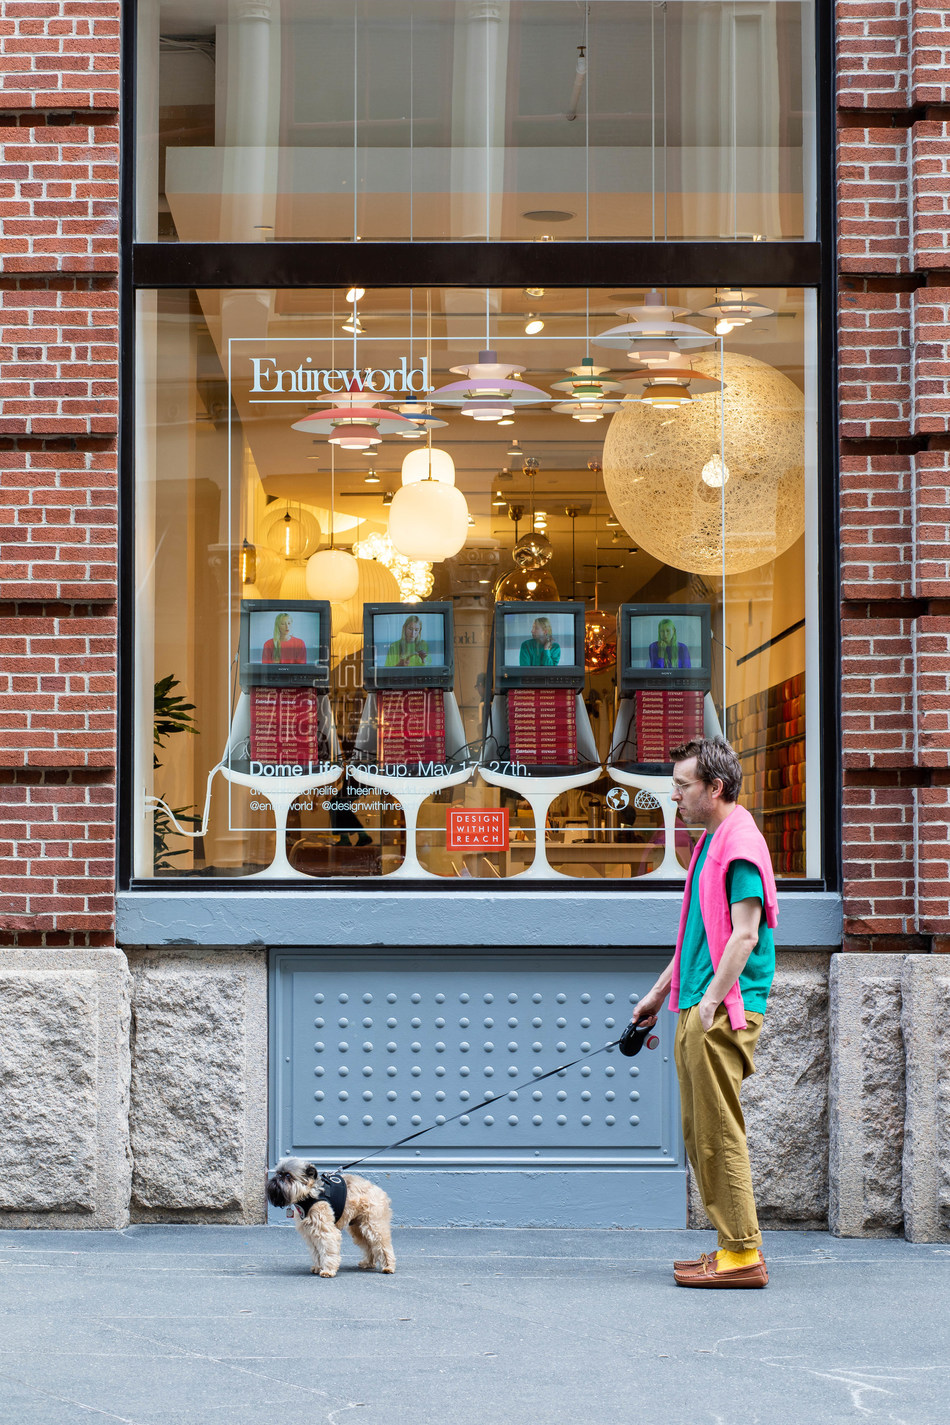 Entireworld Founder and Creative Director Scott Sternberg stands with his dog General Zod in front of the Dome Life pop-up at DWR's SoHo Studio. In the windows, original video created by Entireworld brings the concept to life – models wearing Entireworld interact with furniture and objects from Design Within Reach. Photo: Alexander Kusak